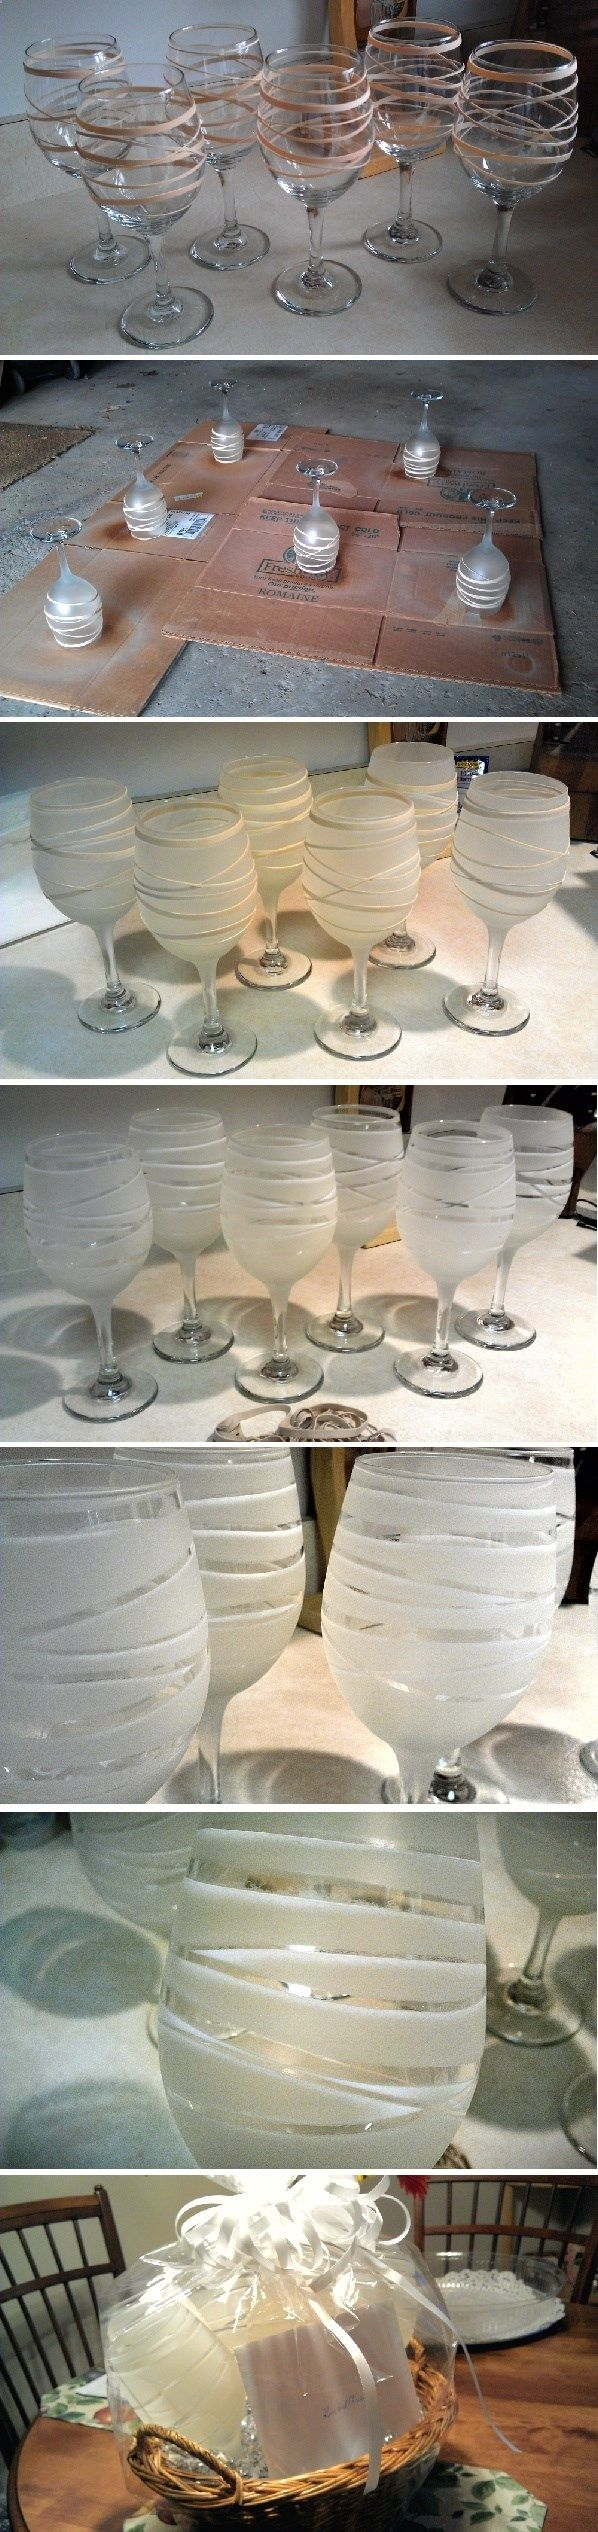 Youll need: dollar store wine glasses, assorted rubber bands, frosted glass spray paint. Package a set of 4 with a bottle of wine for a nice gift! via